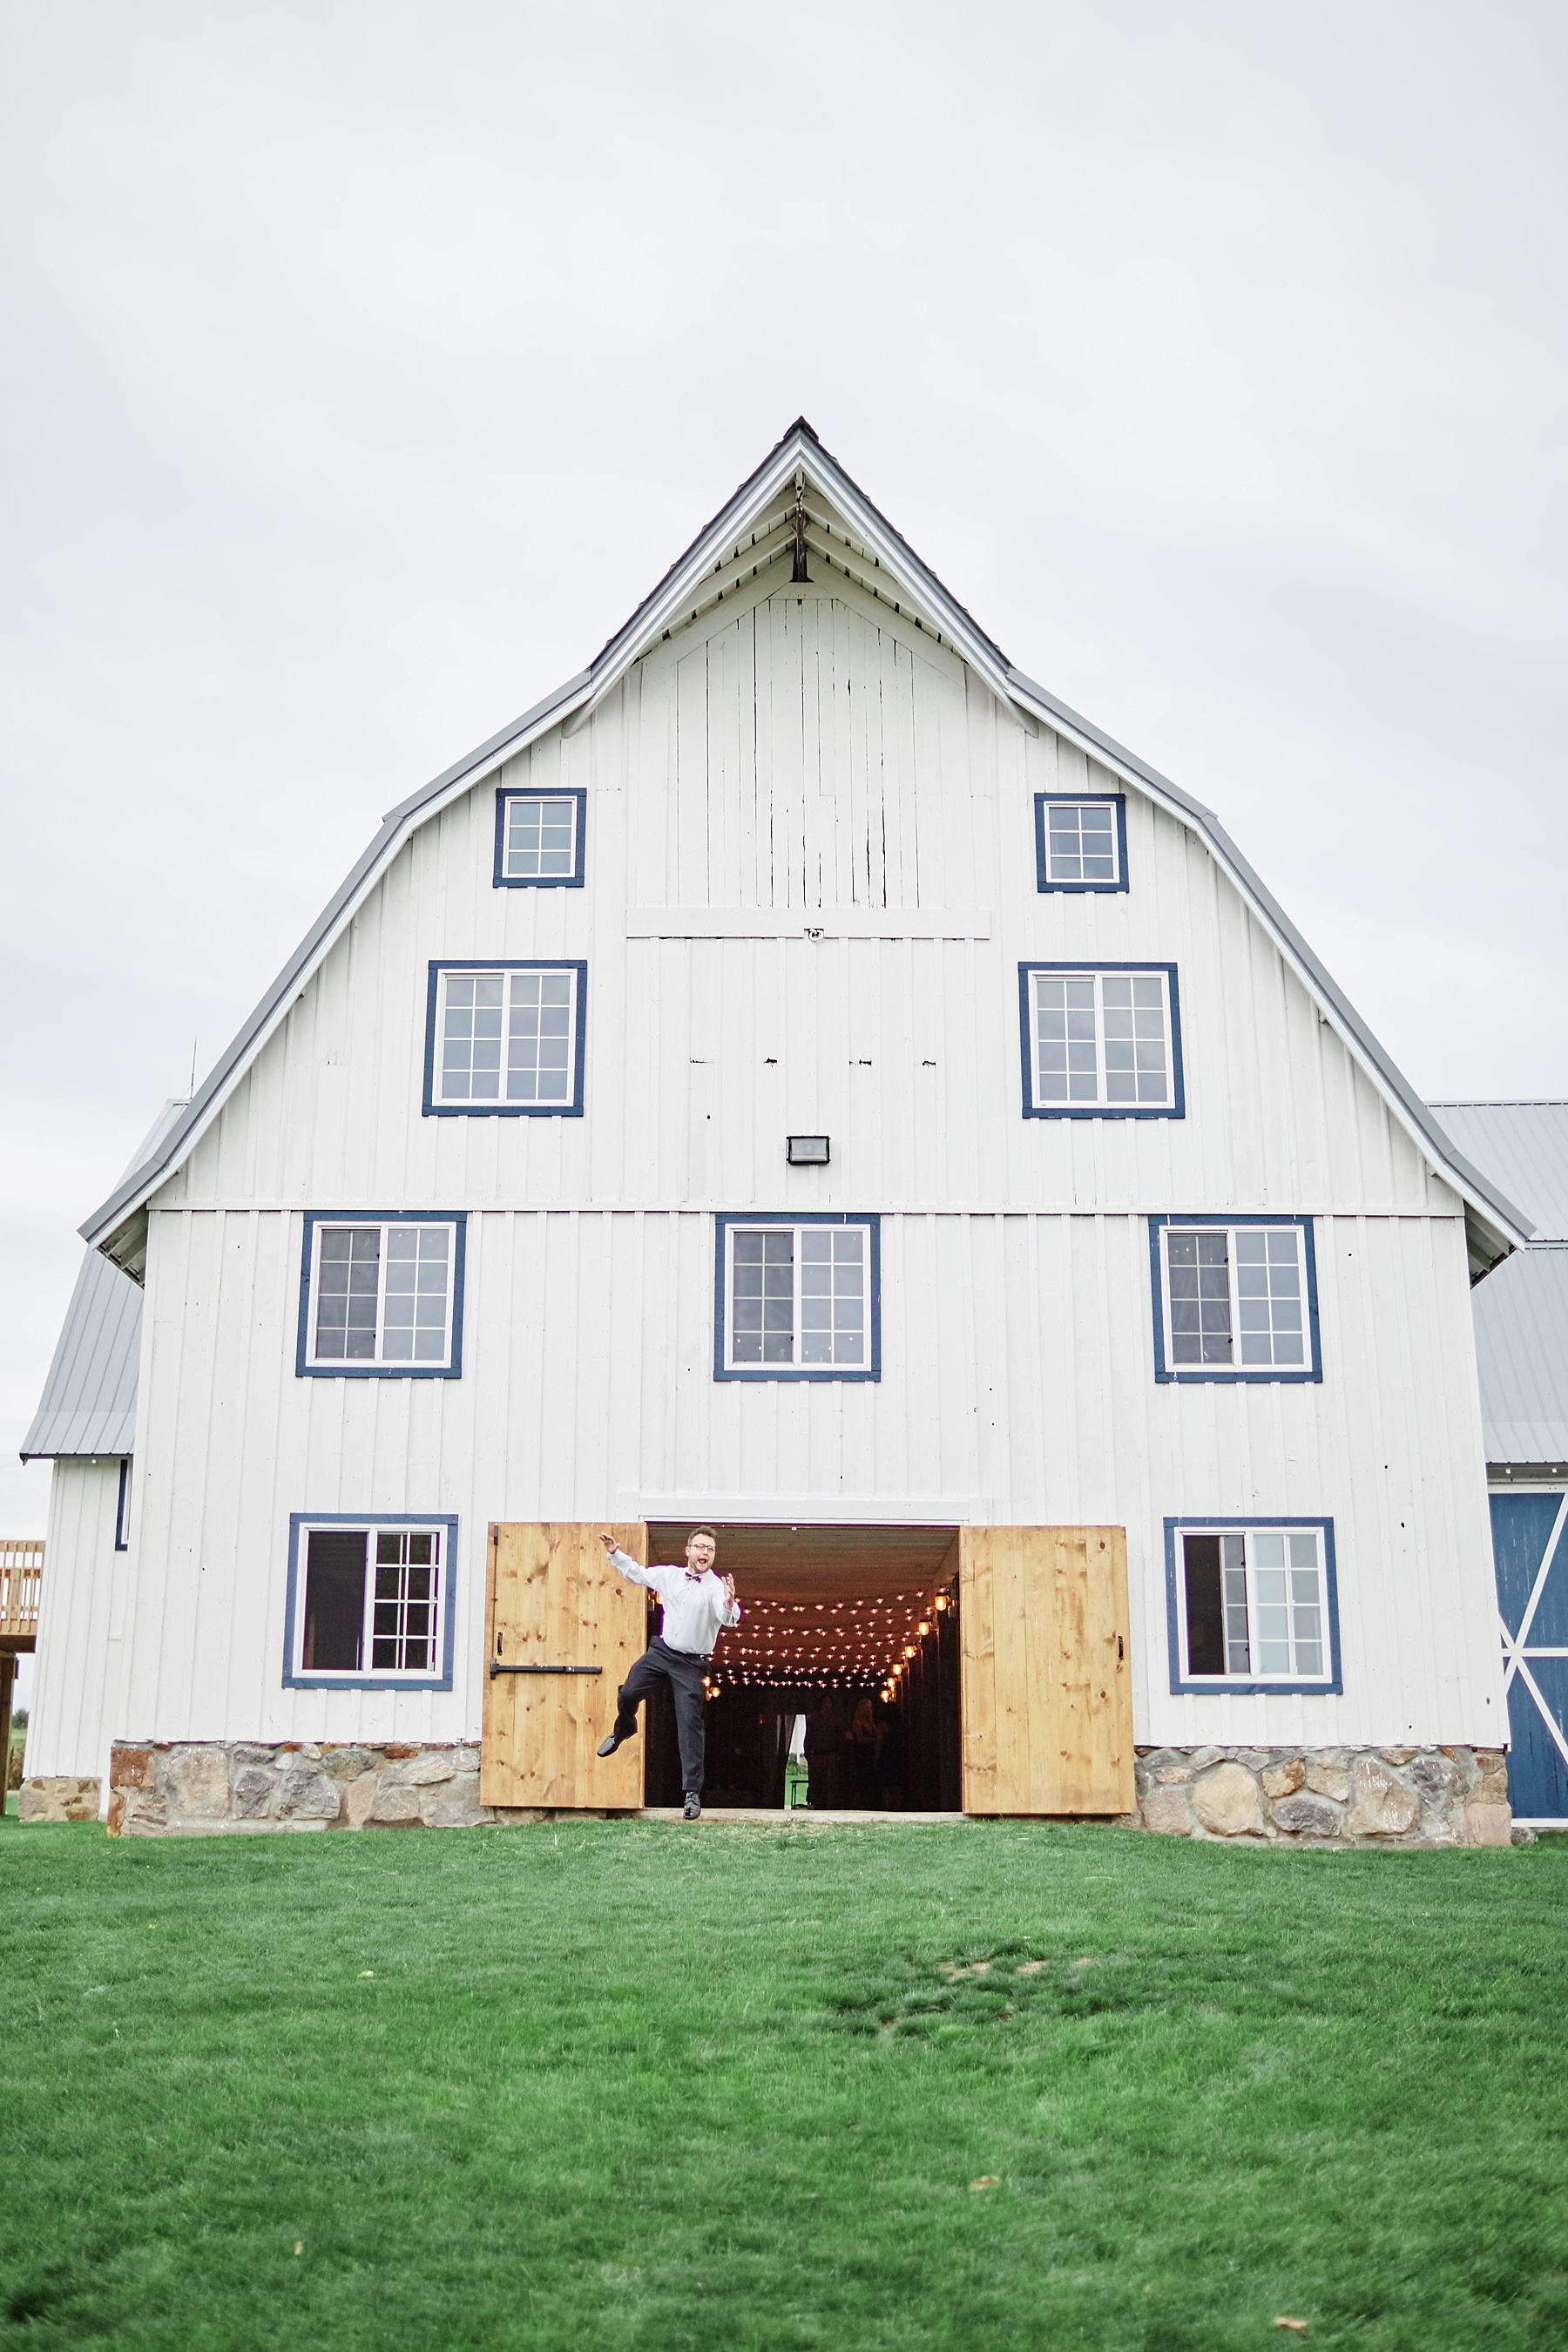 Bloom-Lake-Barn-Wedding-Schafer-Minnesota-Outdoor_0277.jpg